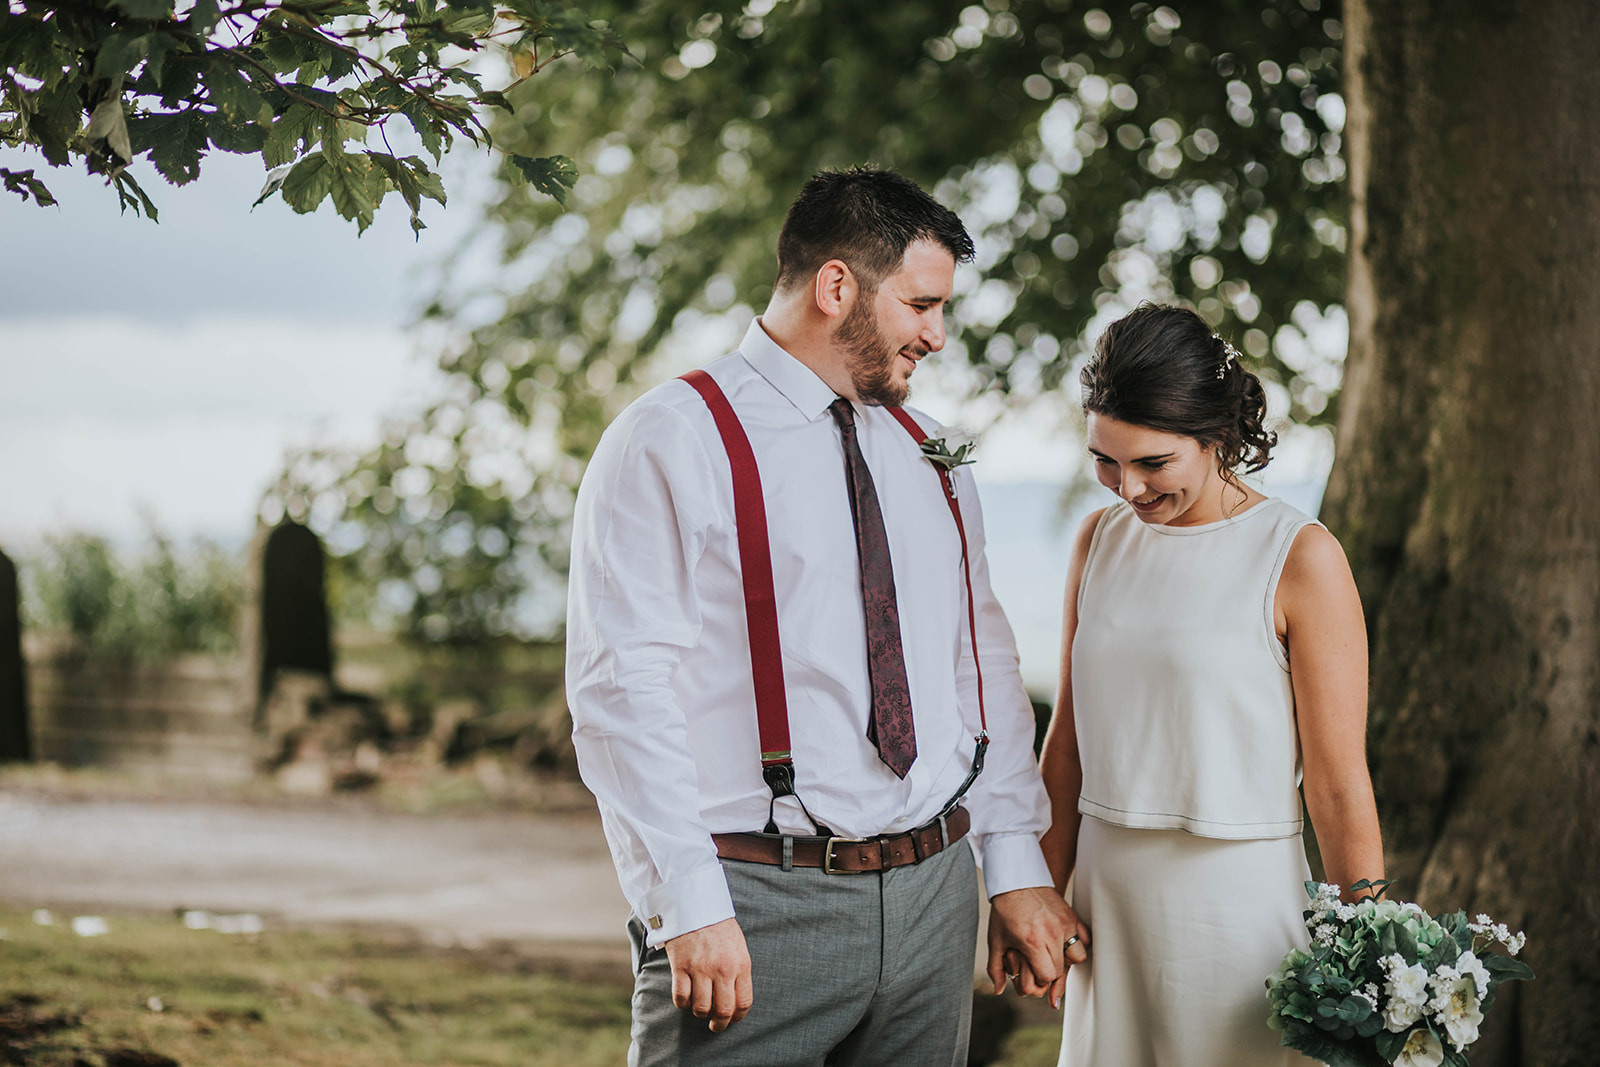 natural relaxed bride and groom next to tree in the sunshine